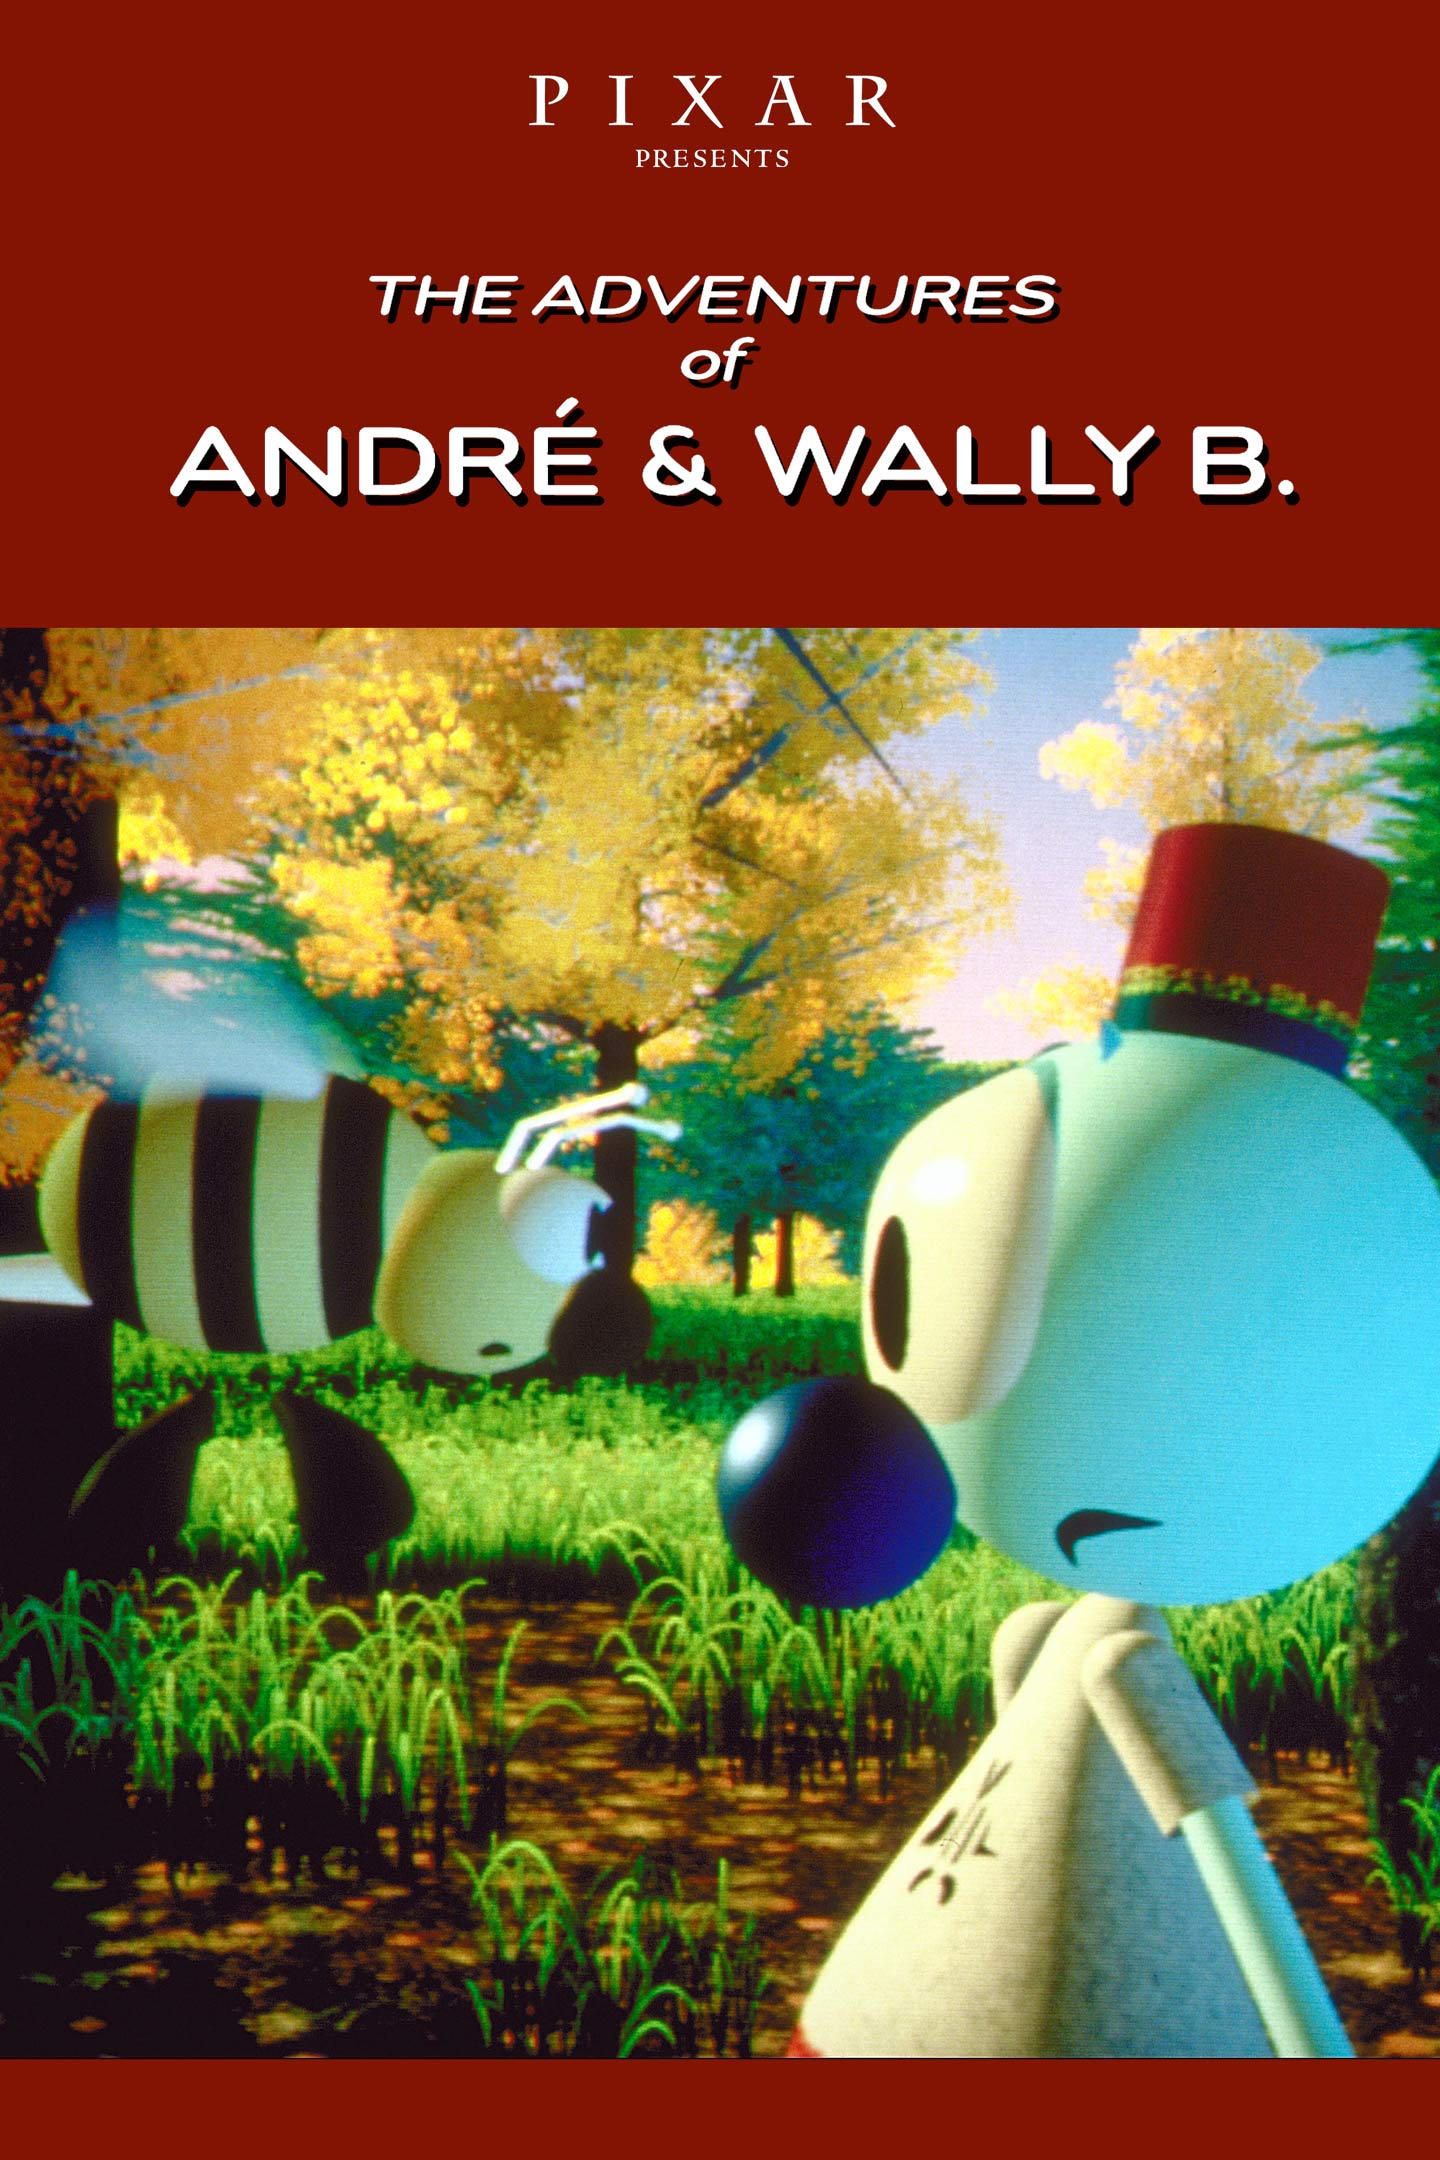 The Adventures of André & Wally B.